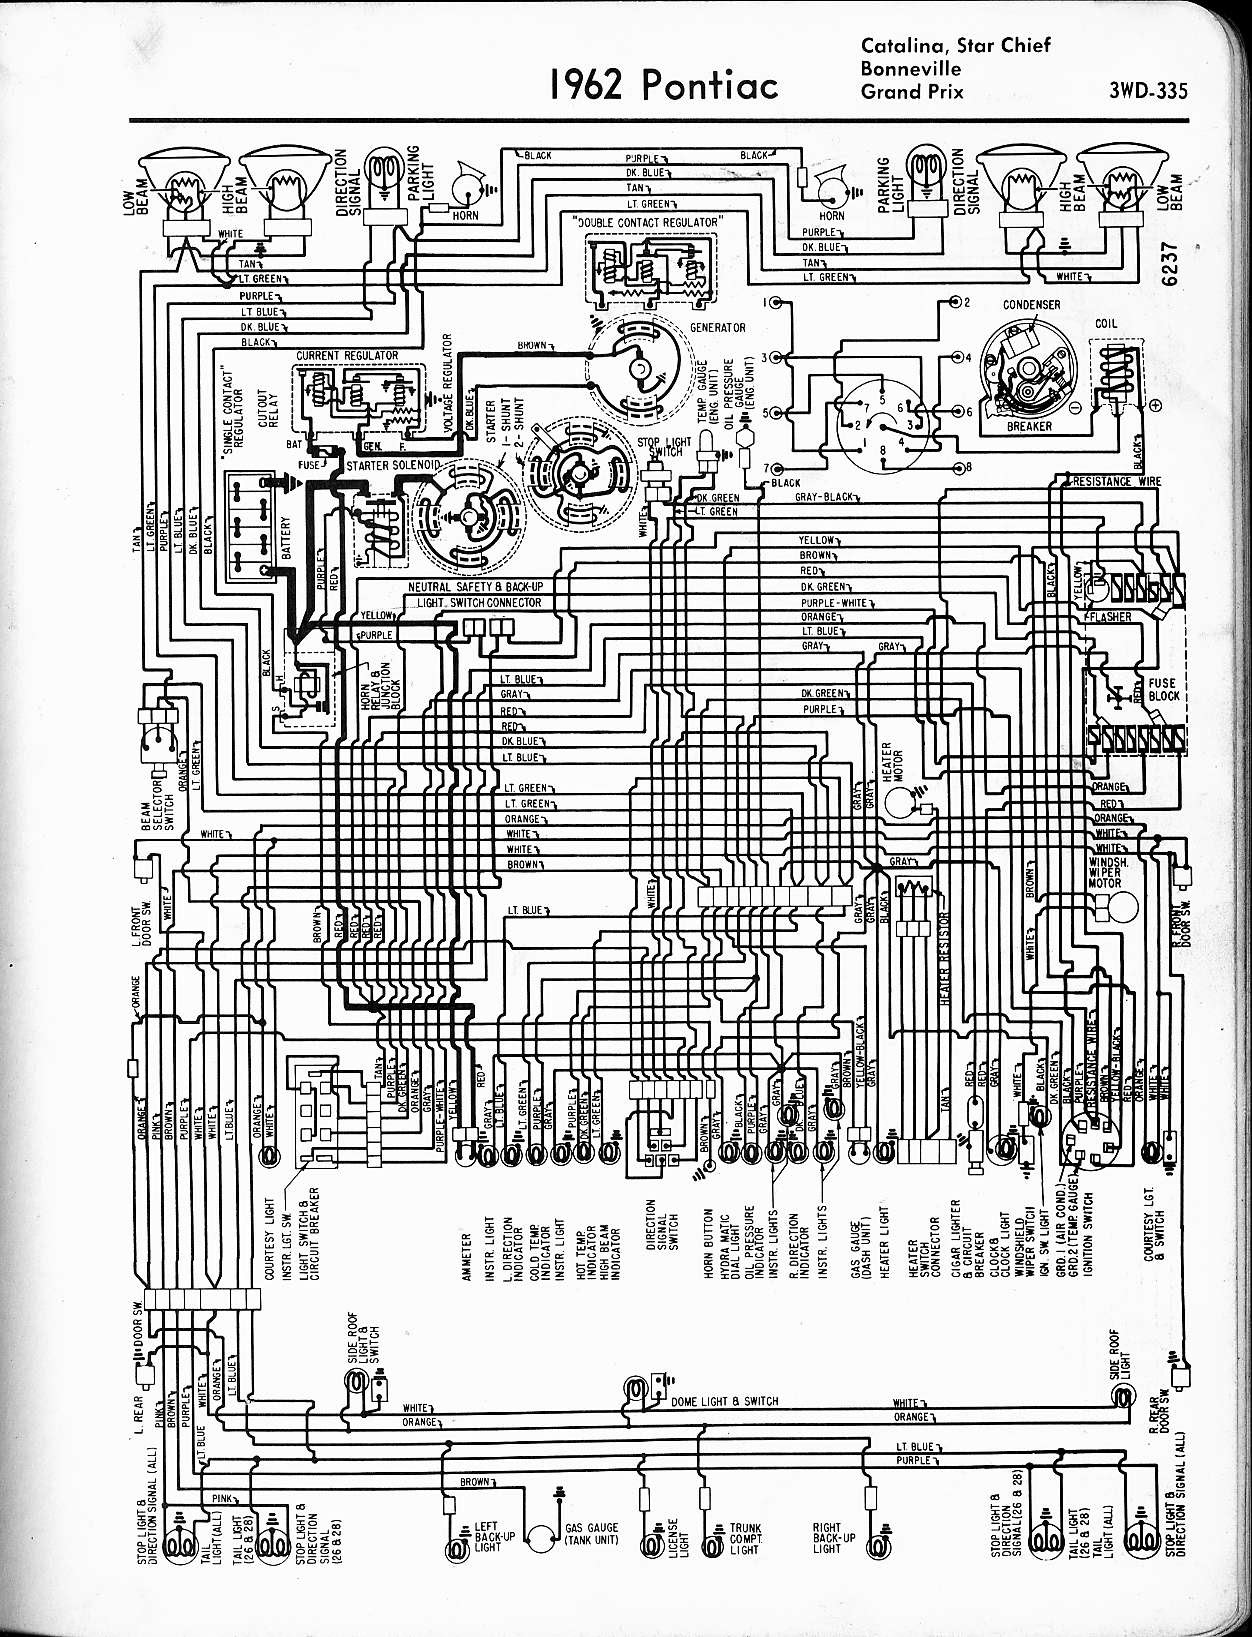 1972 Pontiac Catalina Wiring Diagram Wiring Diagram View A View A Zaafran It